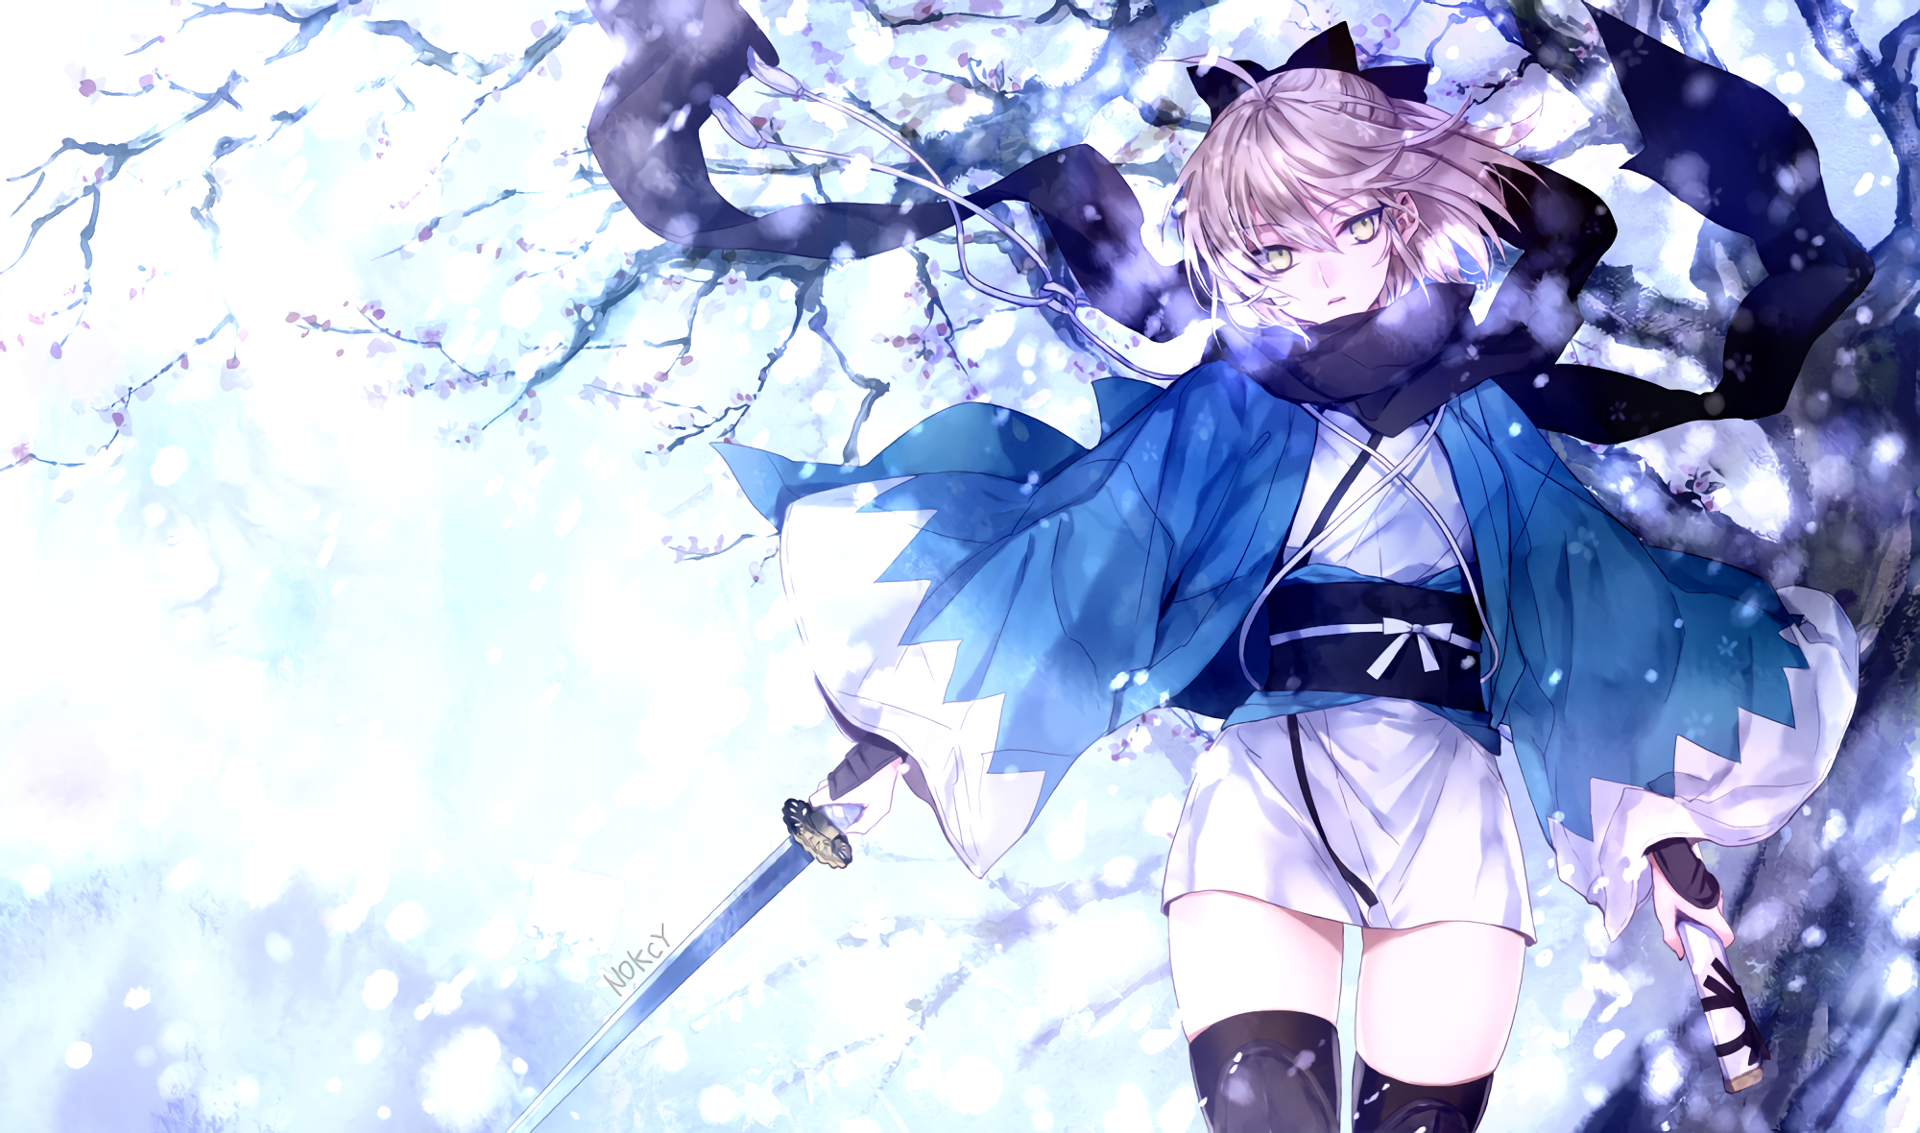 6 Fate Grand Order Hd Wallpapers Backgrounds Wallpaper